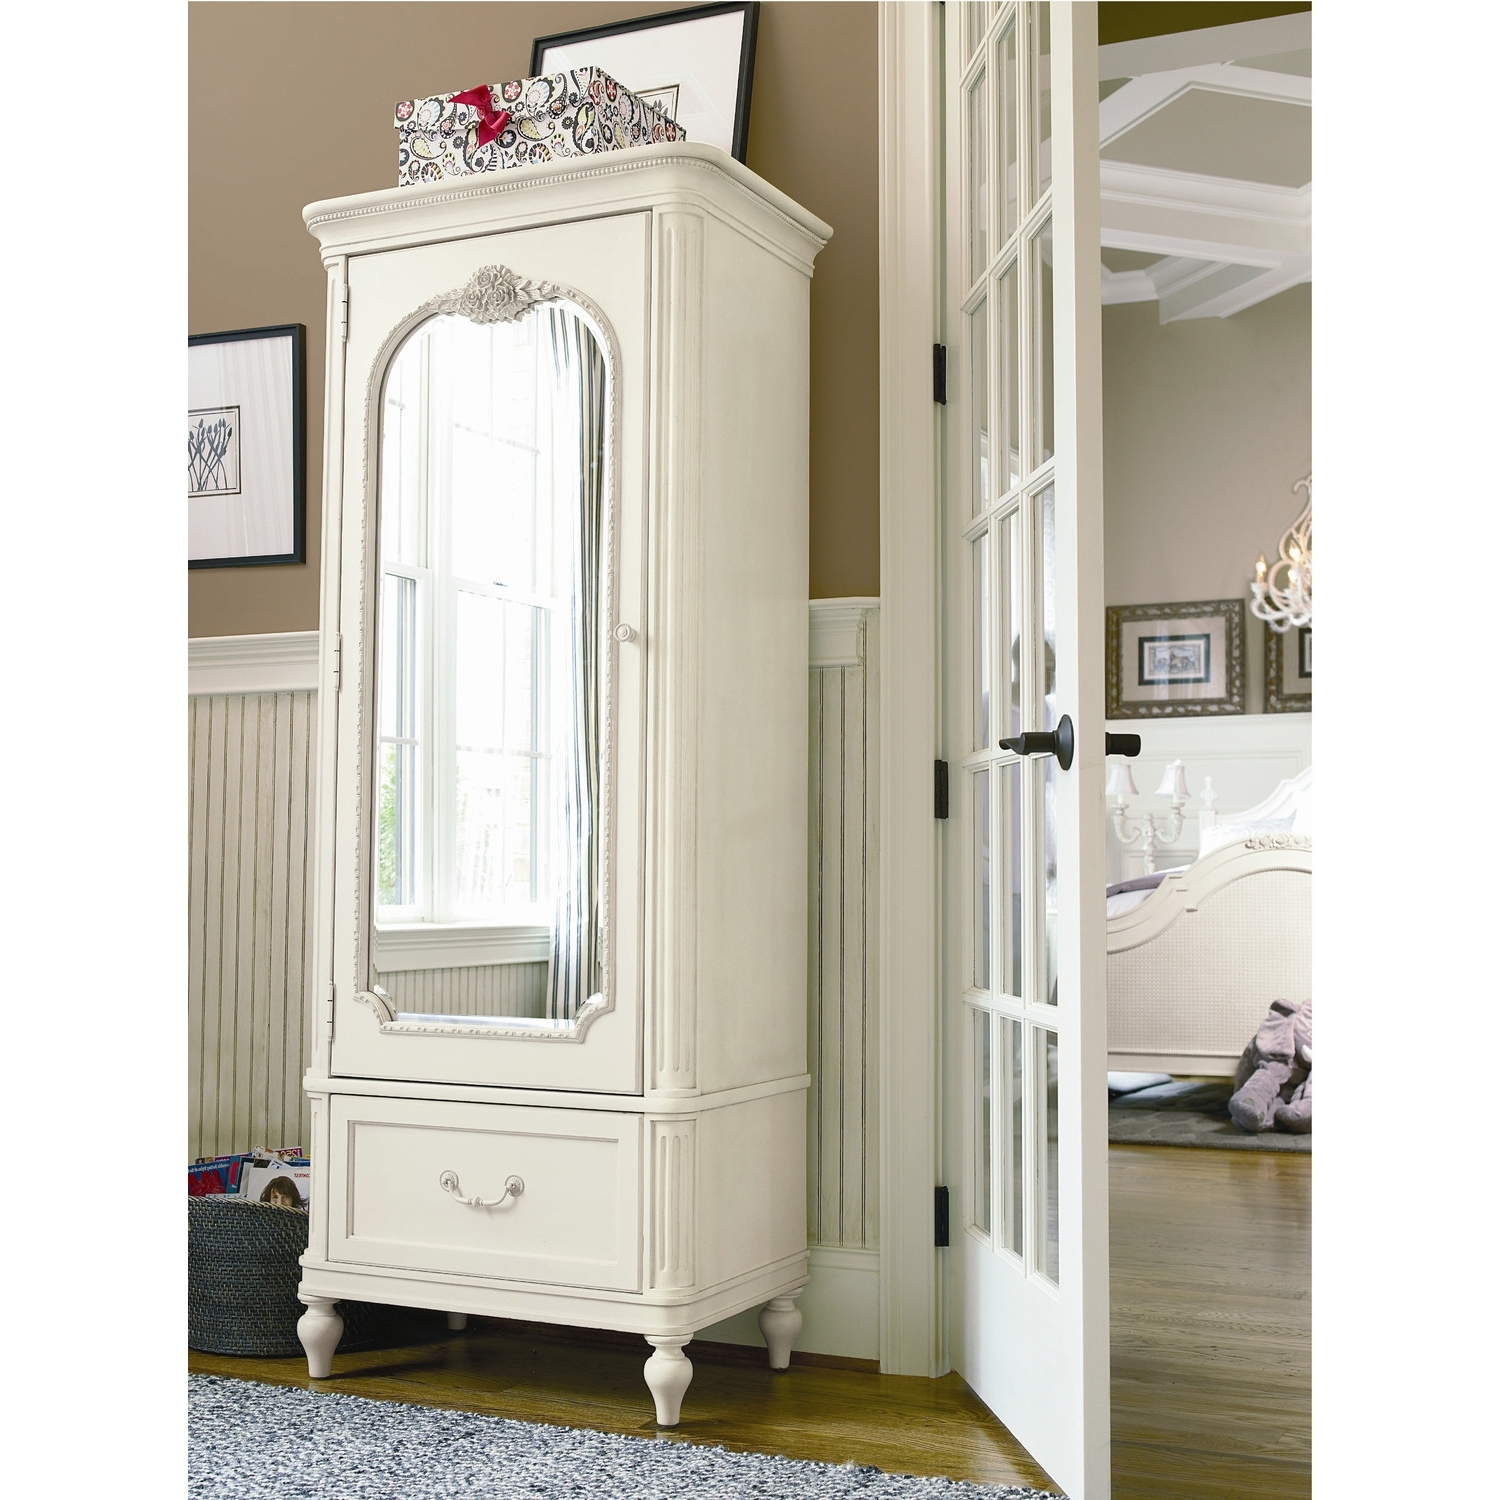 Bedroom: Antique Interior Storage Design With Wardrobe Armoire Throughout Famous White Wardrobes Armoire (View 8 of 15)